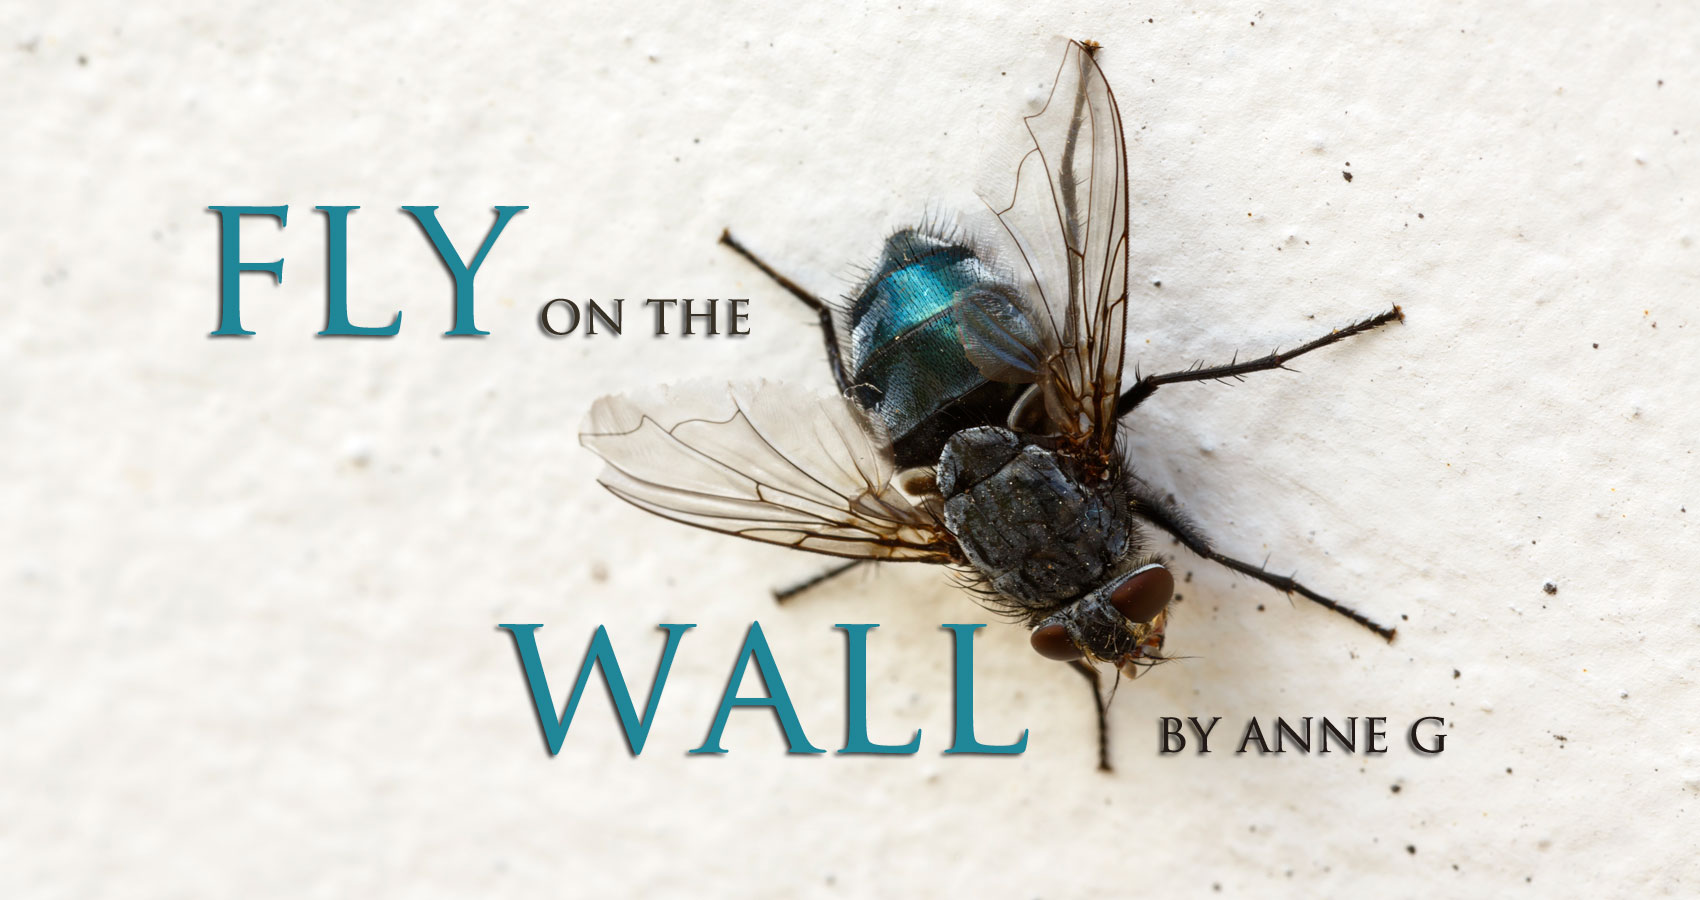 Fly on the Wall by Anne G at Spillwords.com